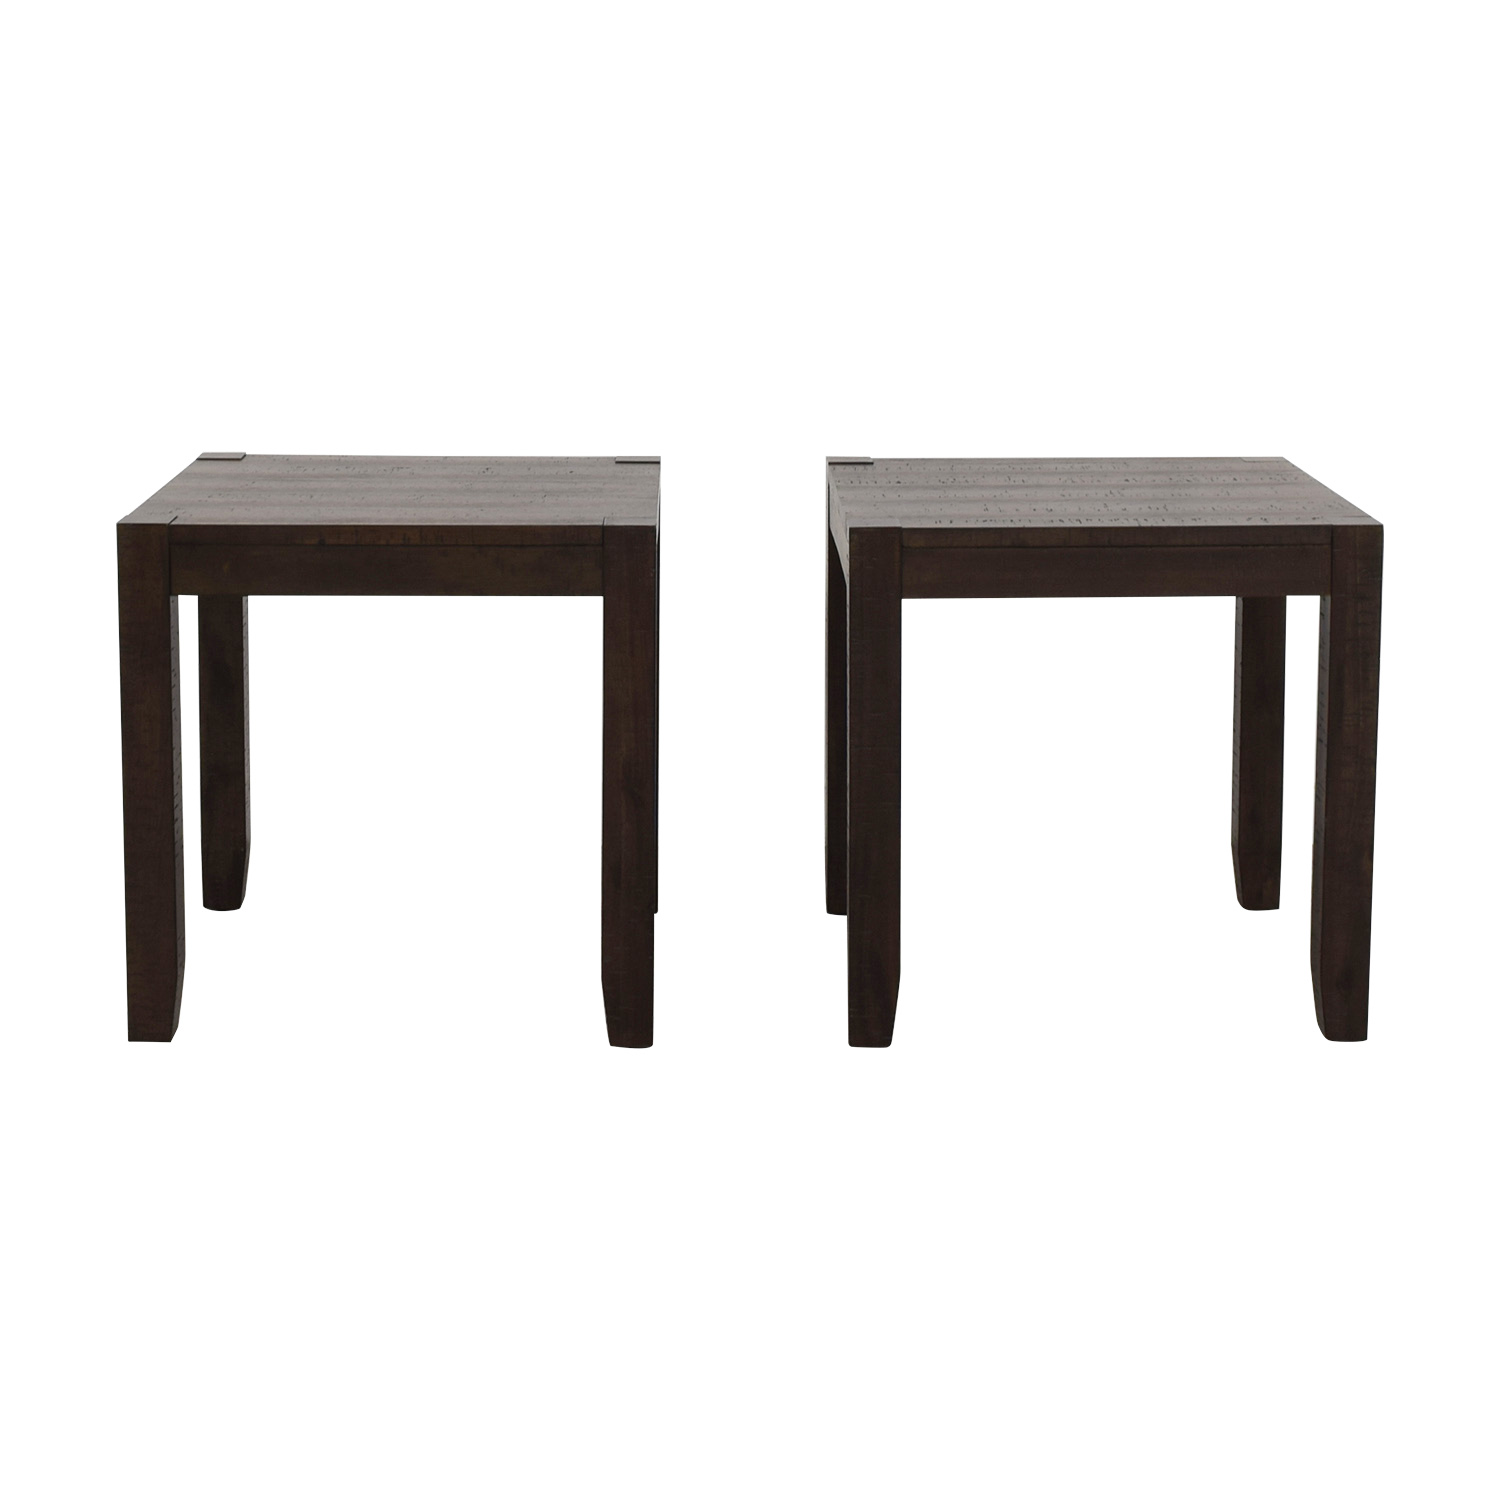 Bob's Furniture Bob's Furniture Brown End Tables on sale